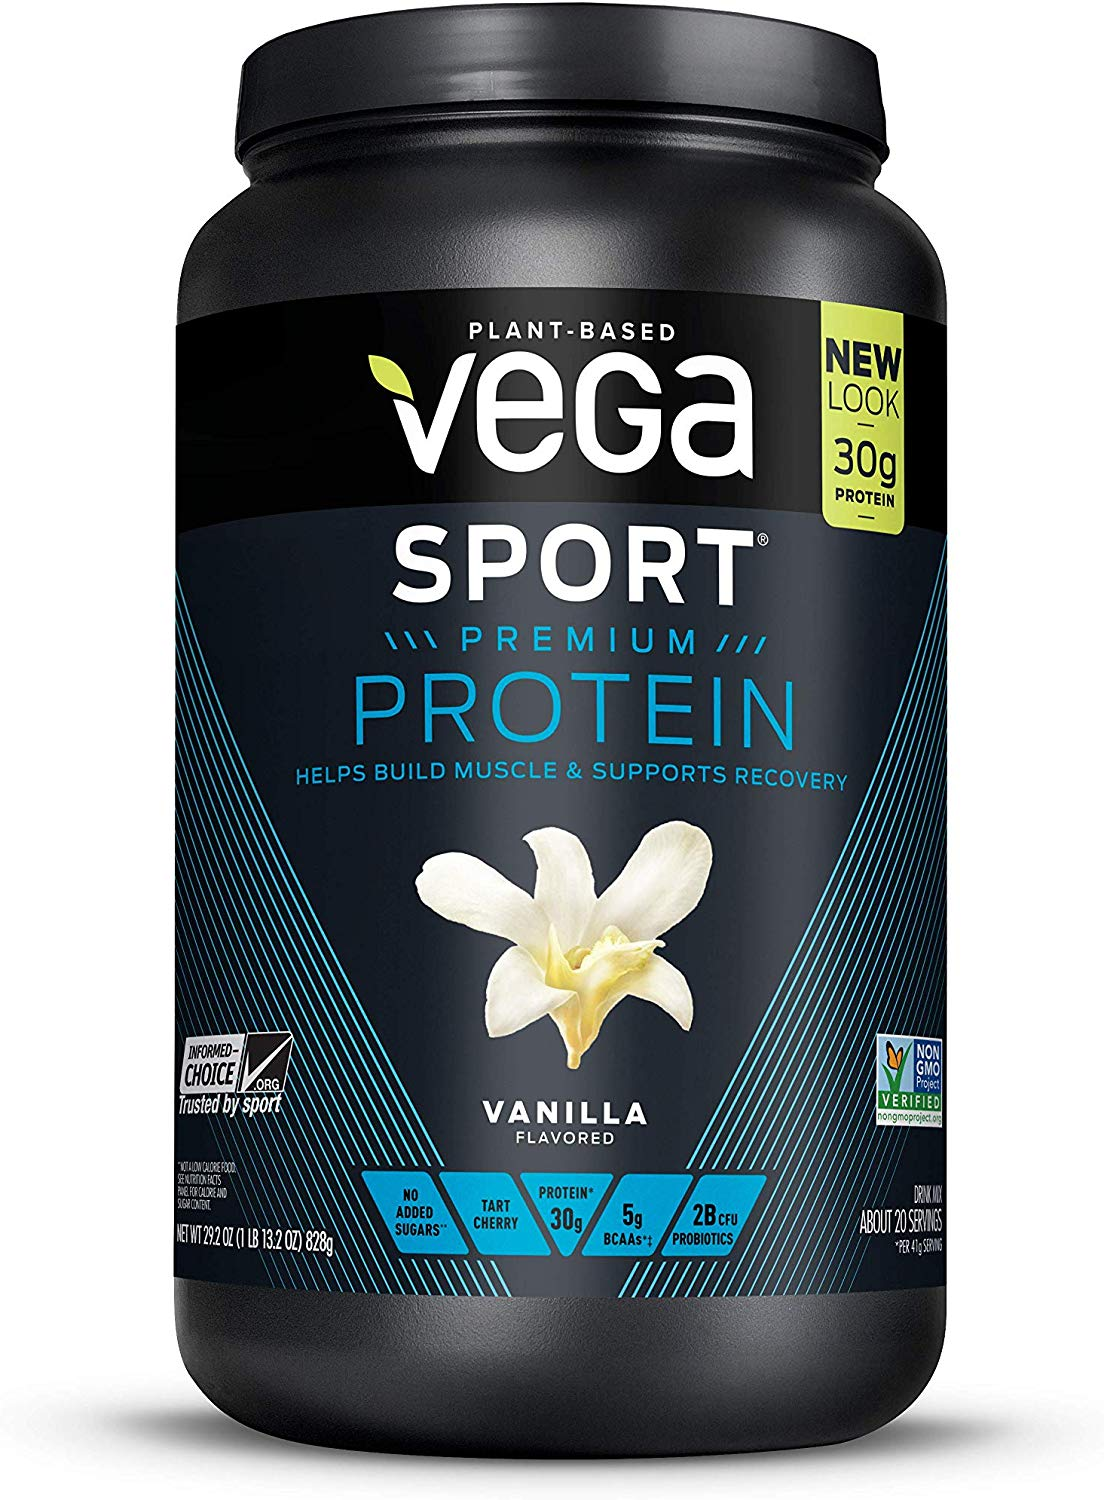 Vega Sport Premium Protein, Vanilla, 20 Servings, 29.2 Ounce (Pack of 1), Plant-Based Vegan Protein Powder, BCAAs, Amino Acid, tart cherry, Non Whey, Gluten Free, Non GMO (Packaging May Vary)